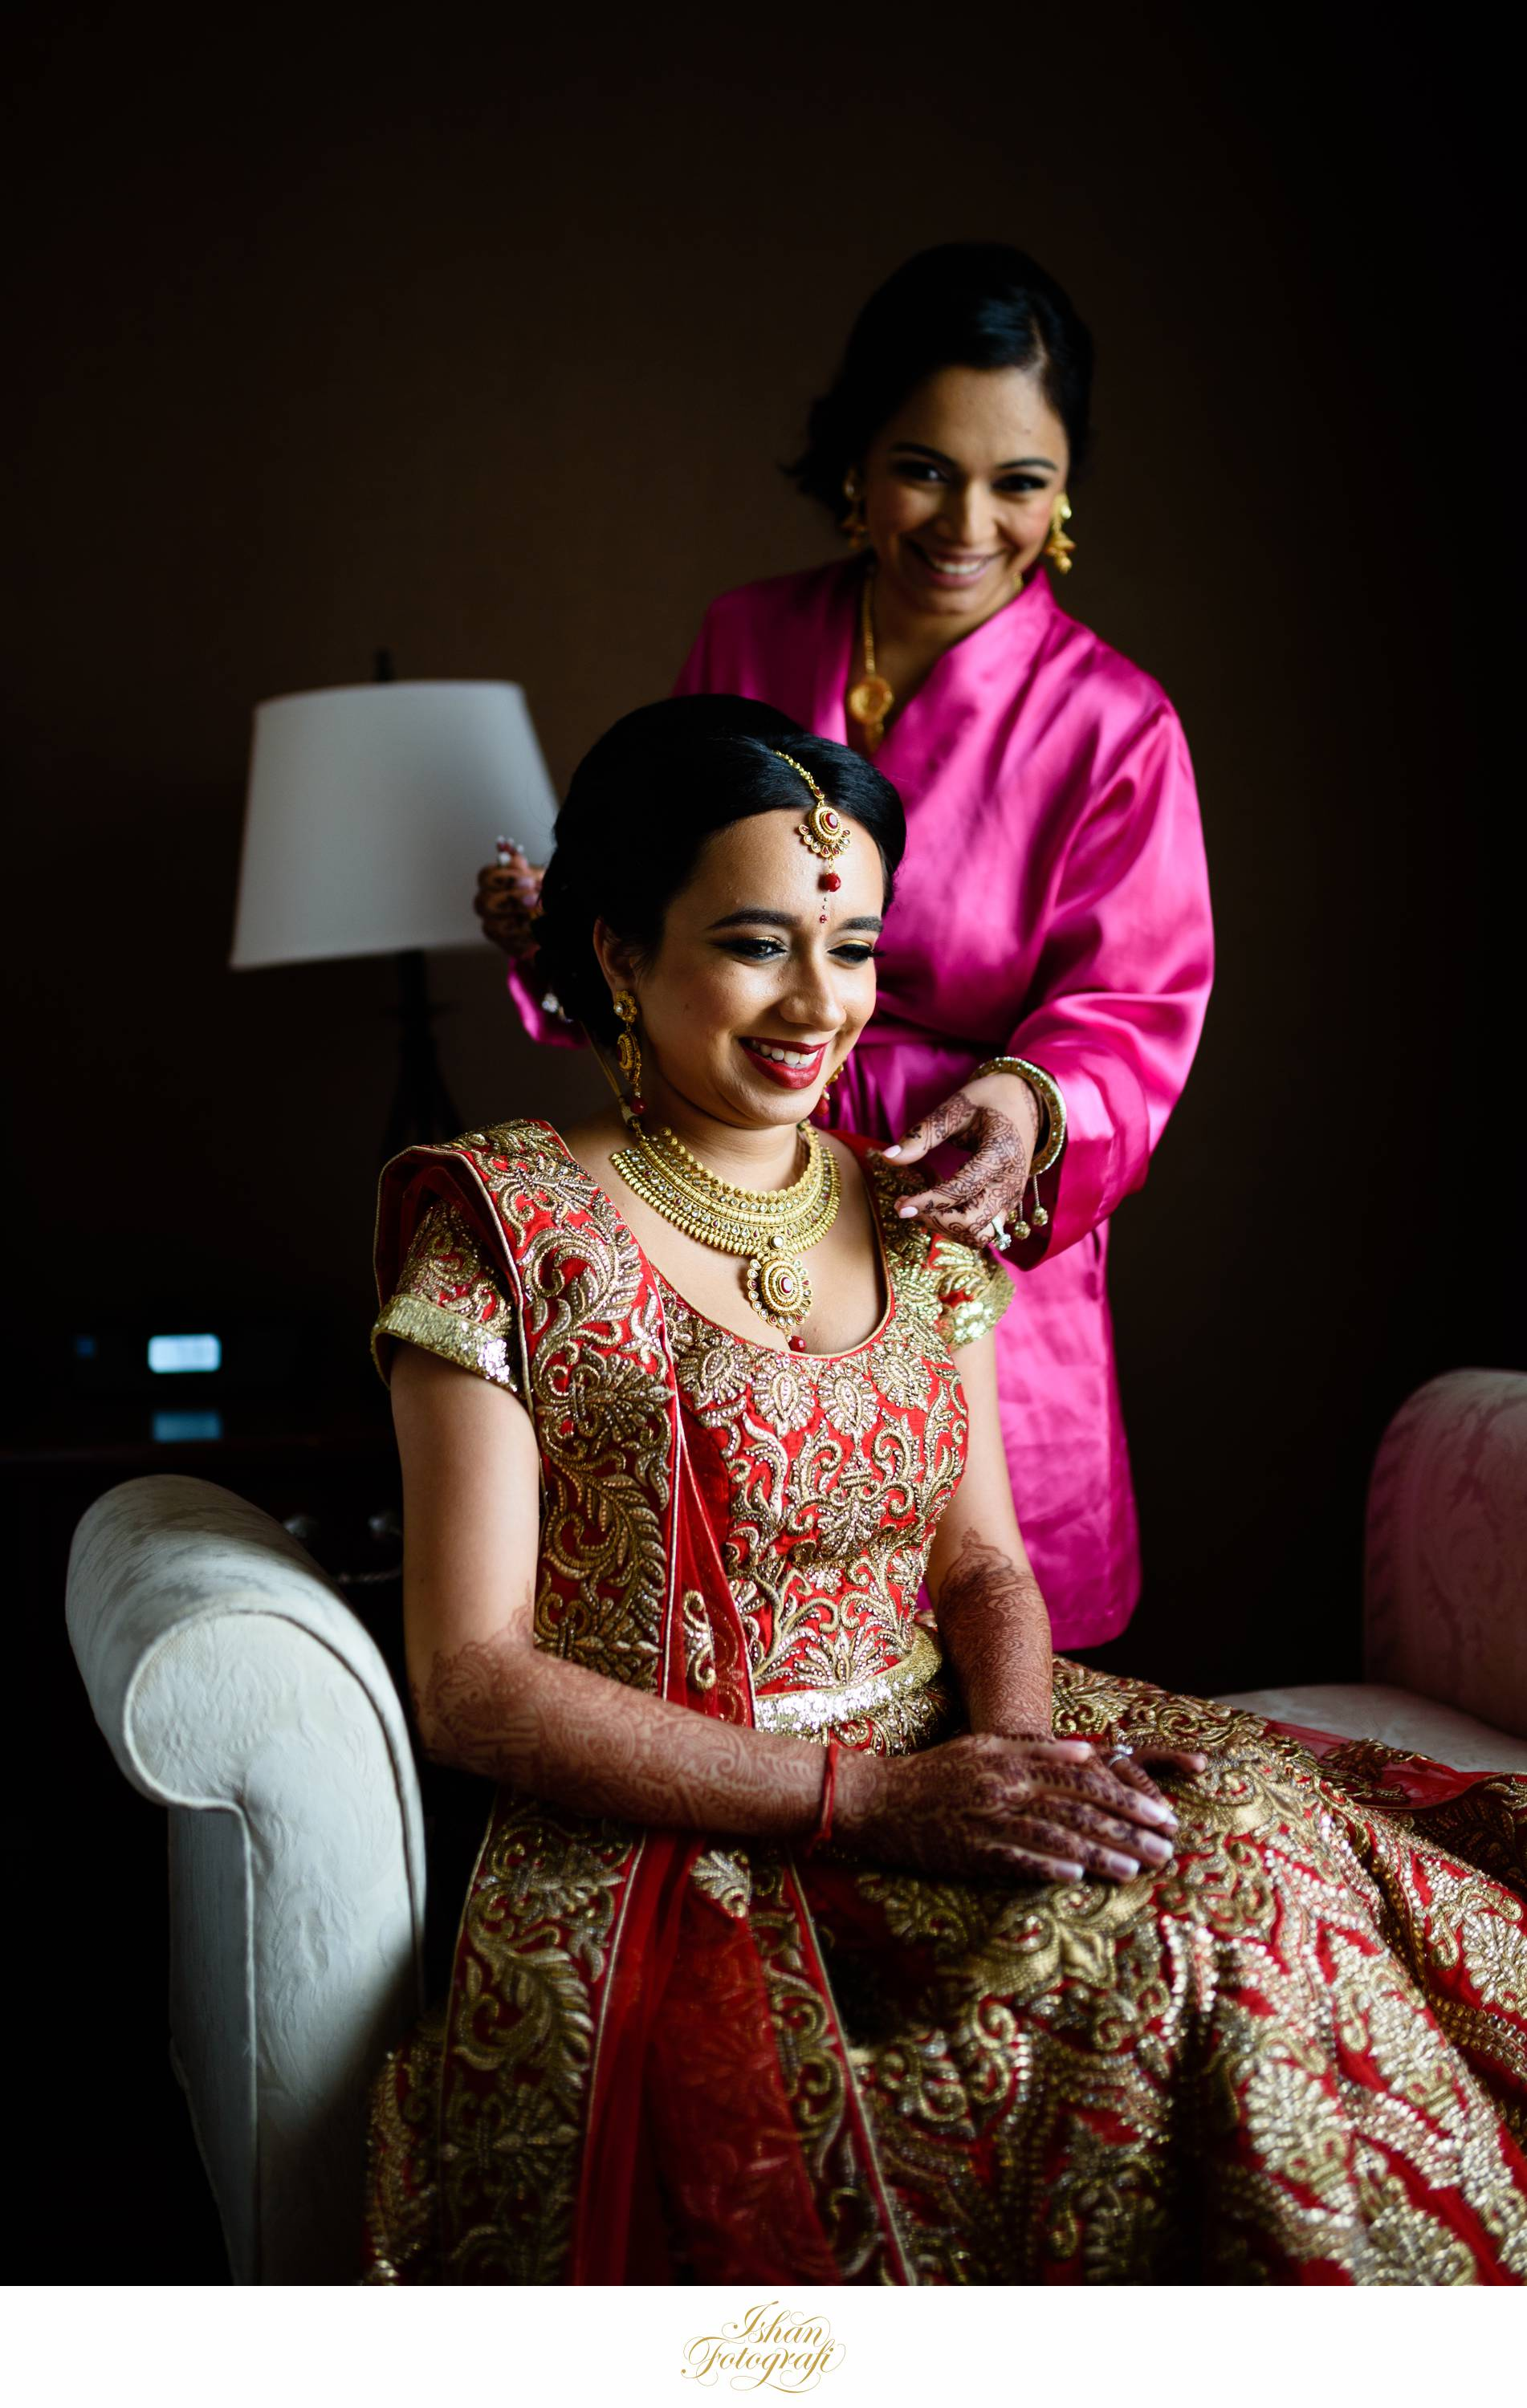 The bride's sister was helping her get ready for her big day. We love documenting moments like these which are timeless memories for our clients.